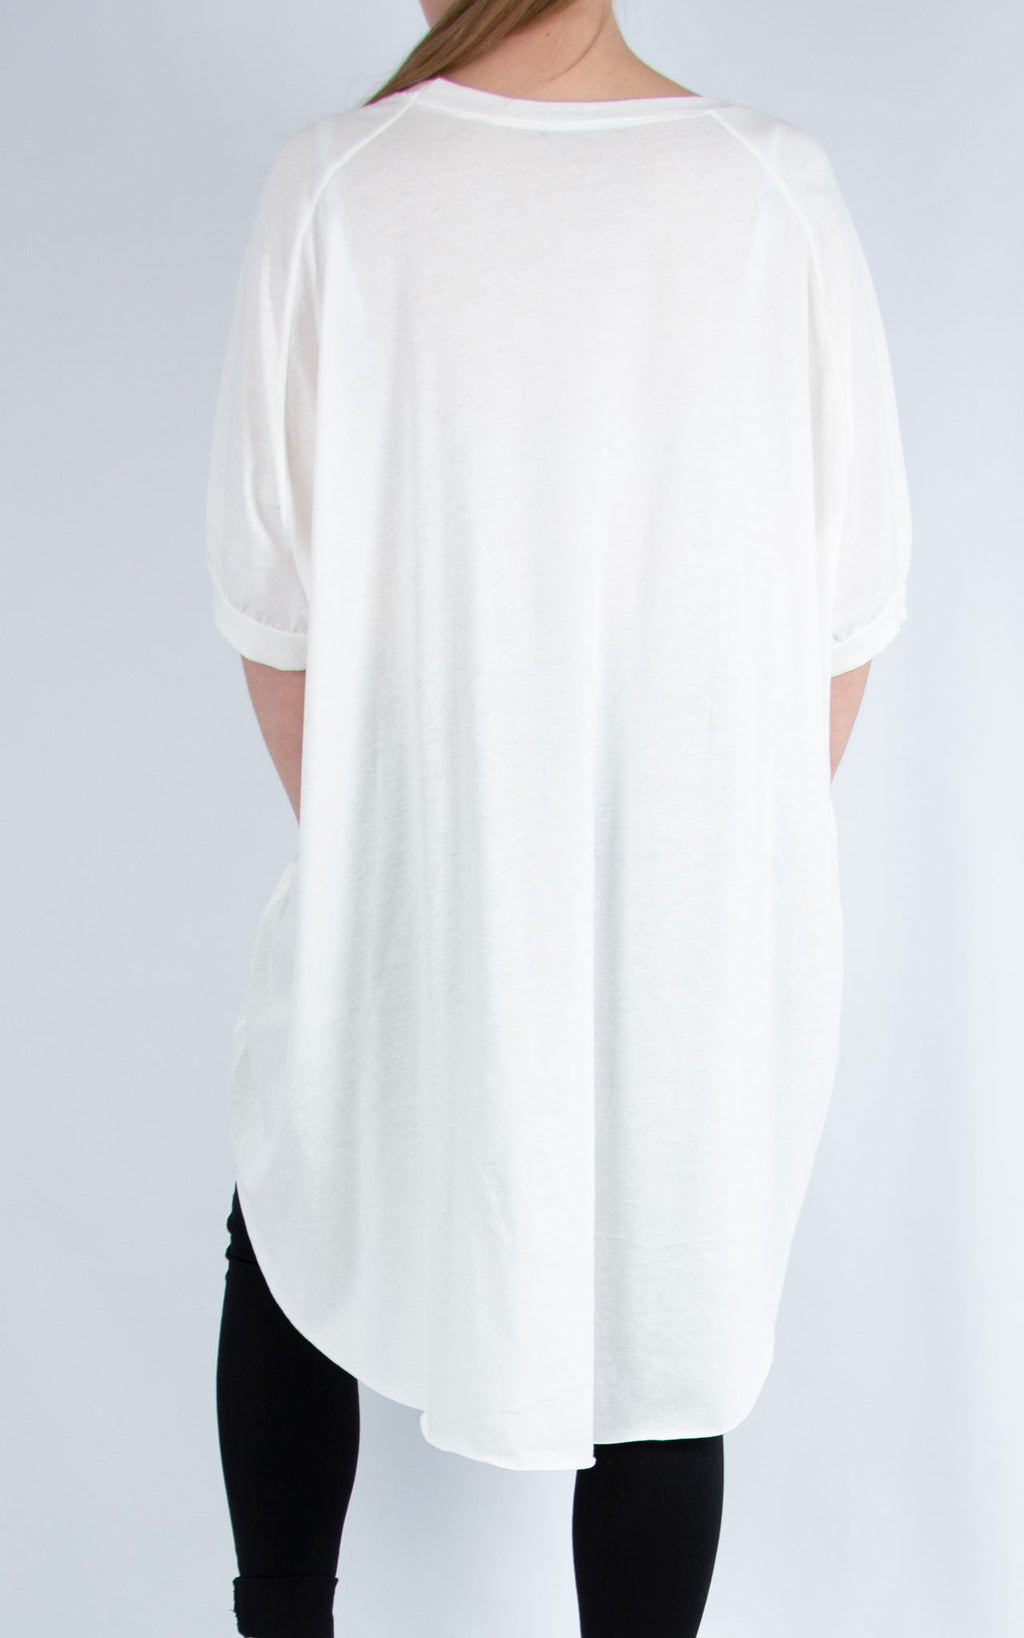 White Long Plain T Shirt | Made in Italy